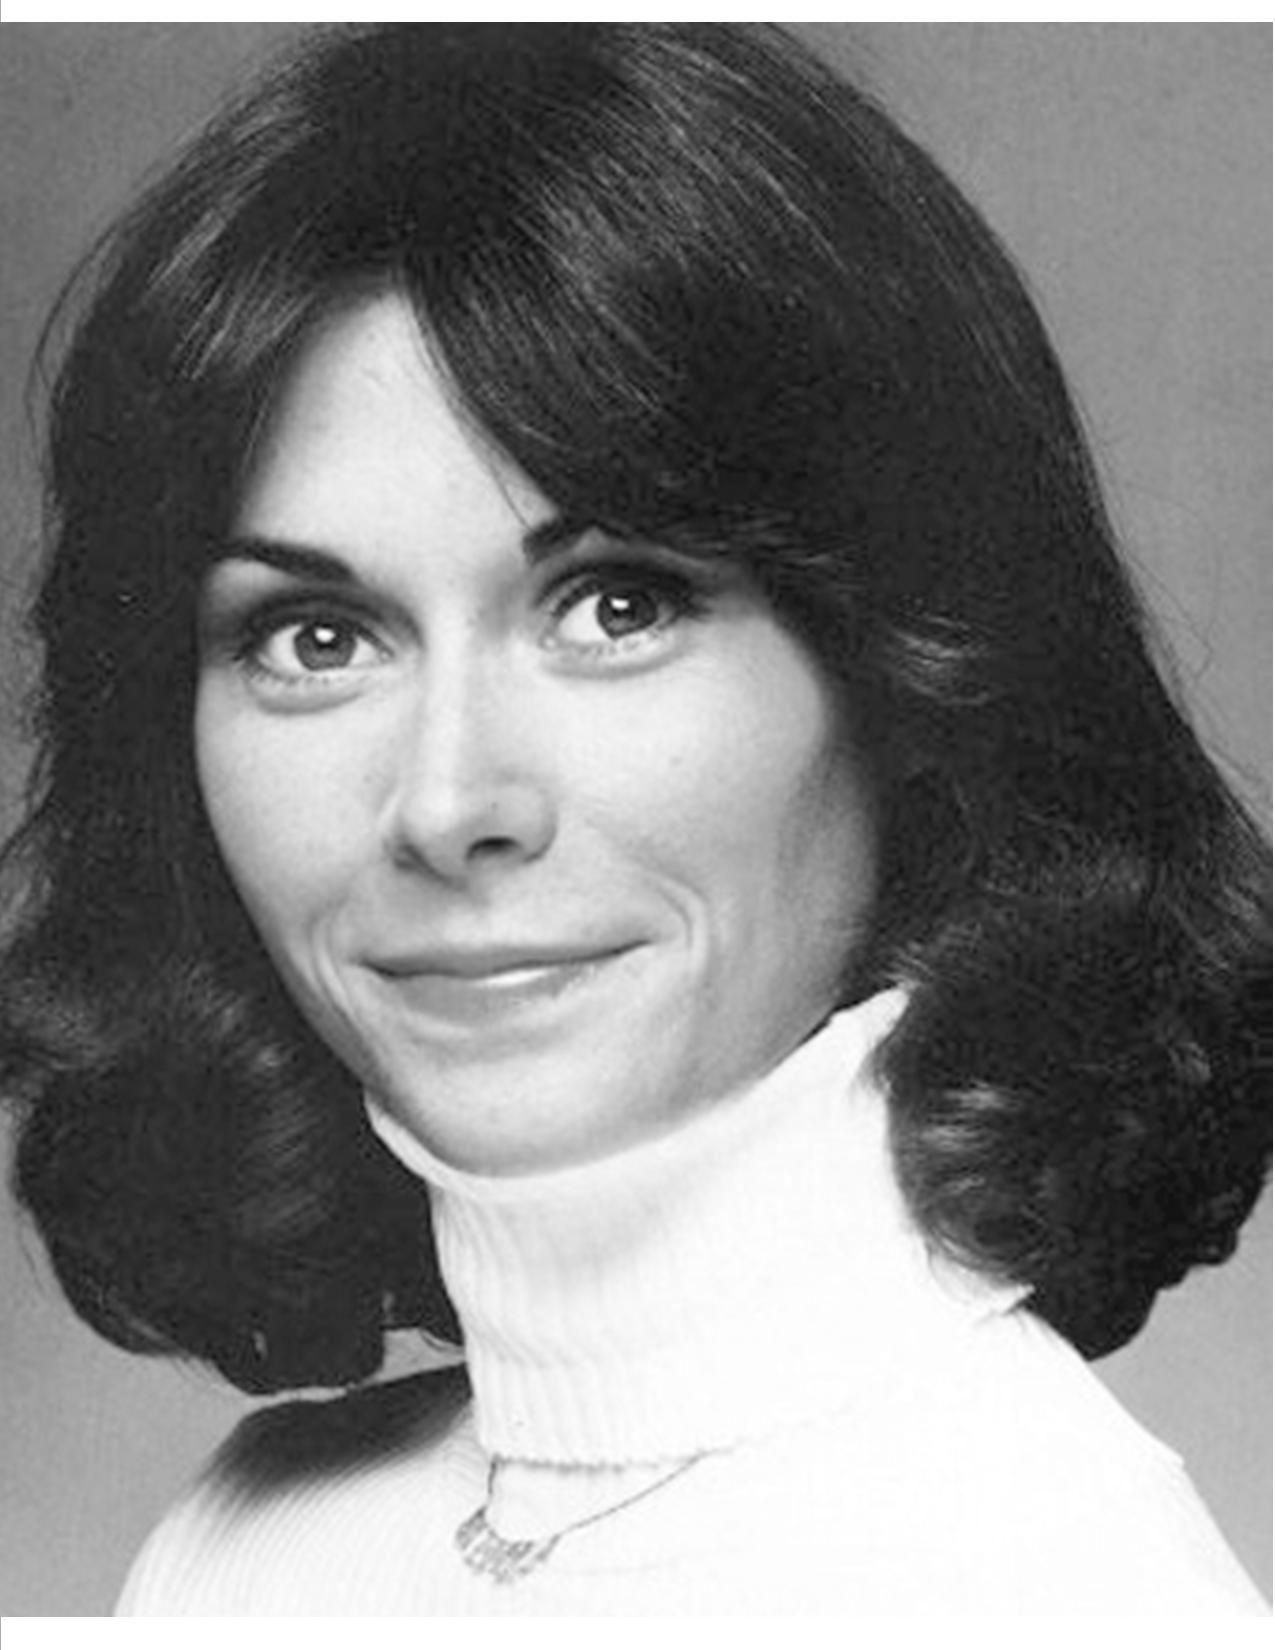 Kate Jackson born October 29, 1948 (age 70)